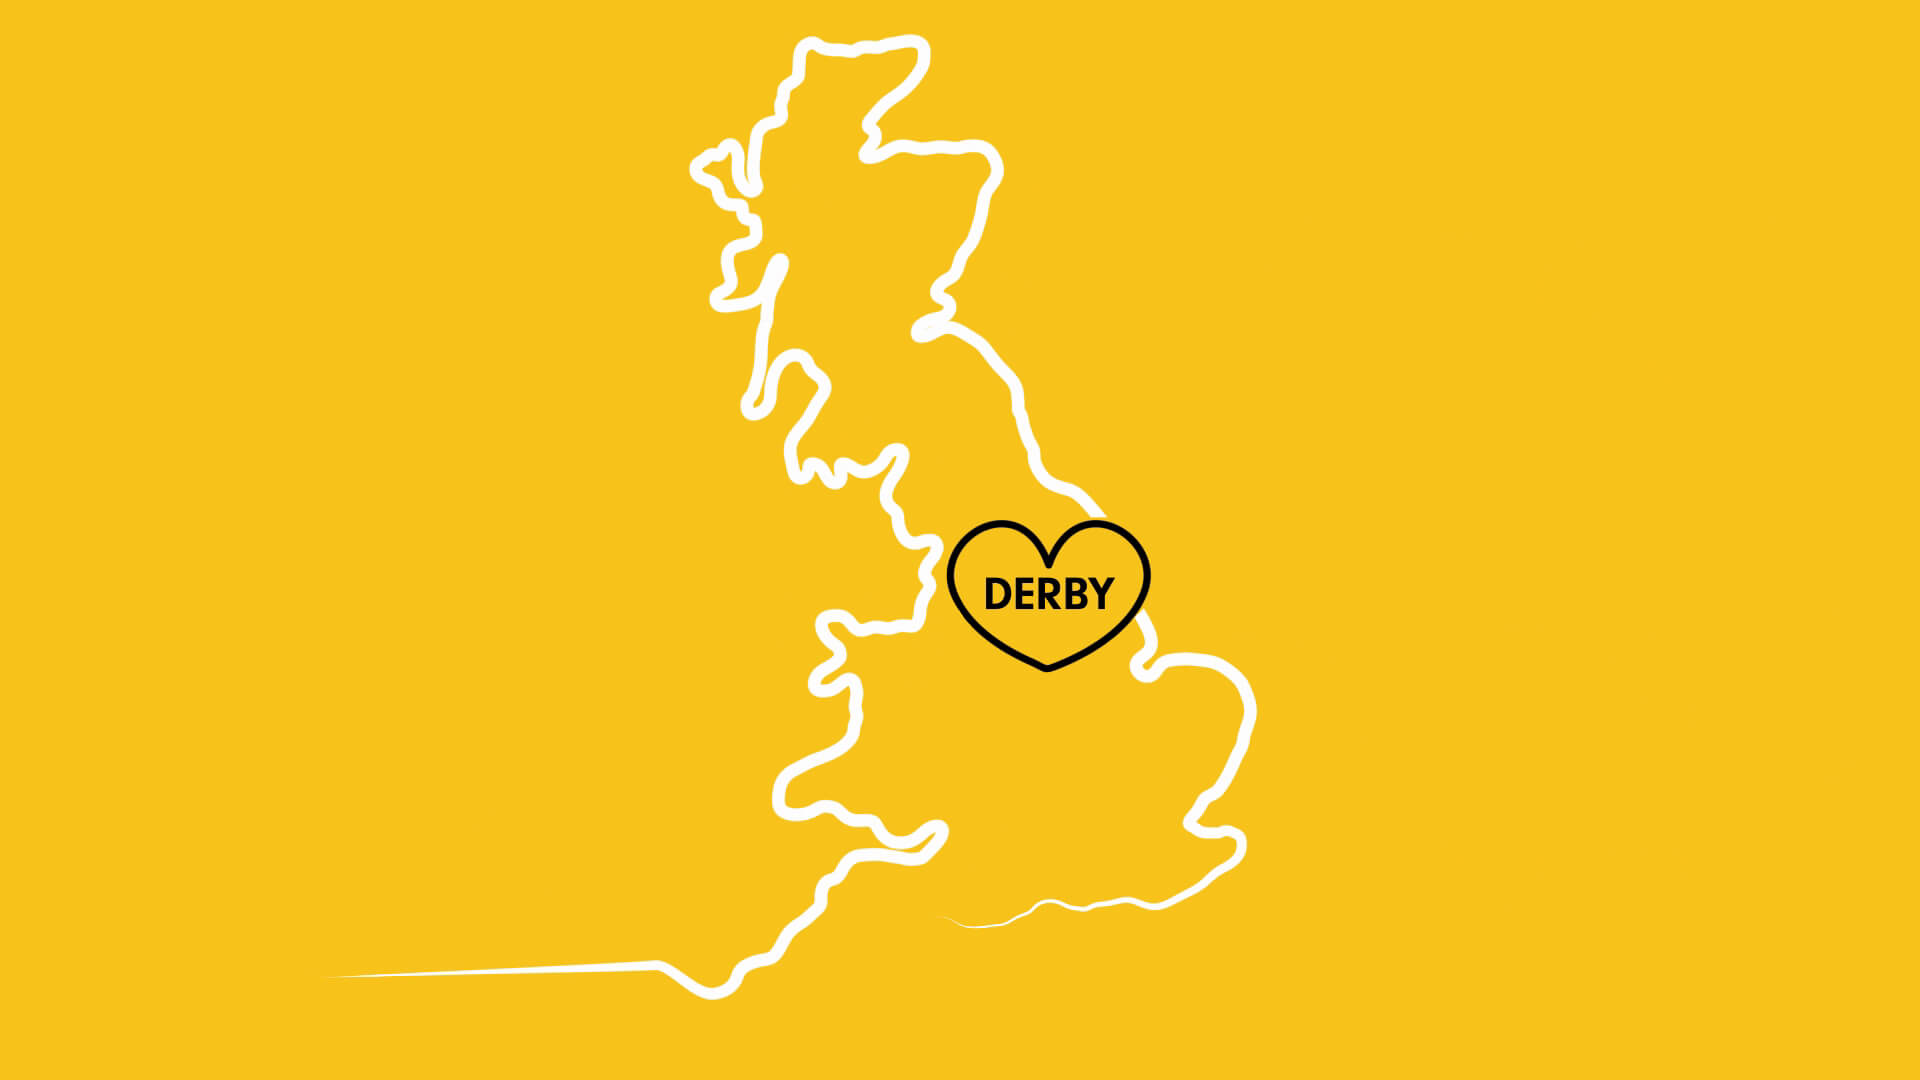 An animated video about where the University of Derby is located in the heart of England.